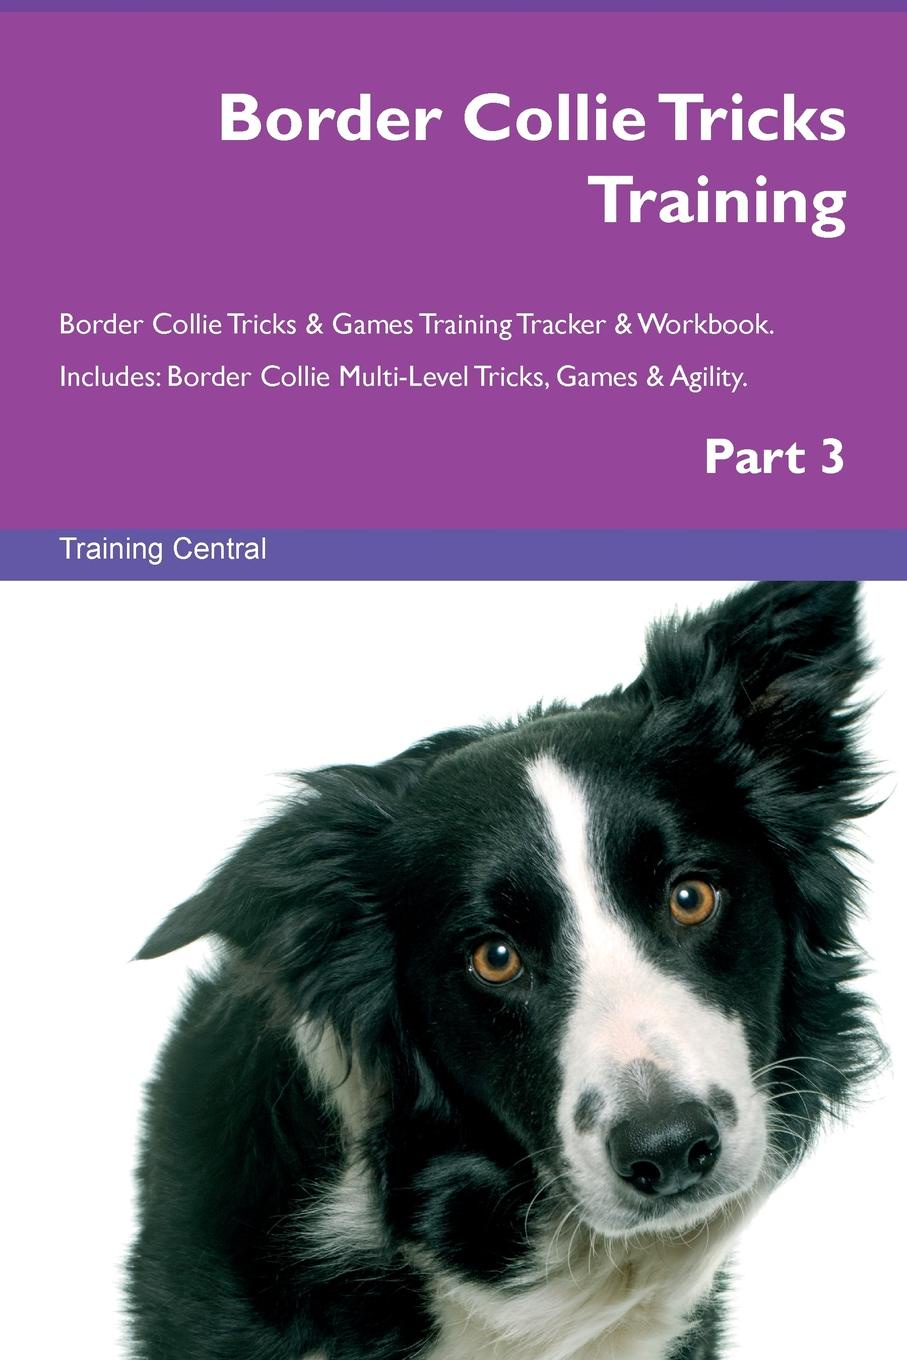 Training Central Border Collie Tricks Training Border Collie Tricks & Games Training Tracker & Workbook. Includes. Border Collie Multi-Level Tricks, Games & Agility. Part 3